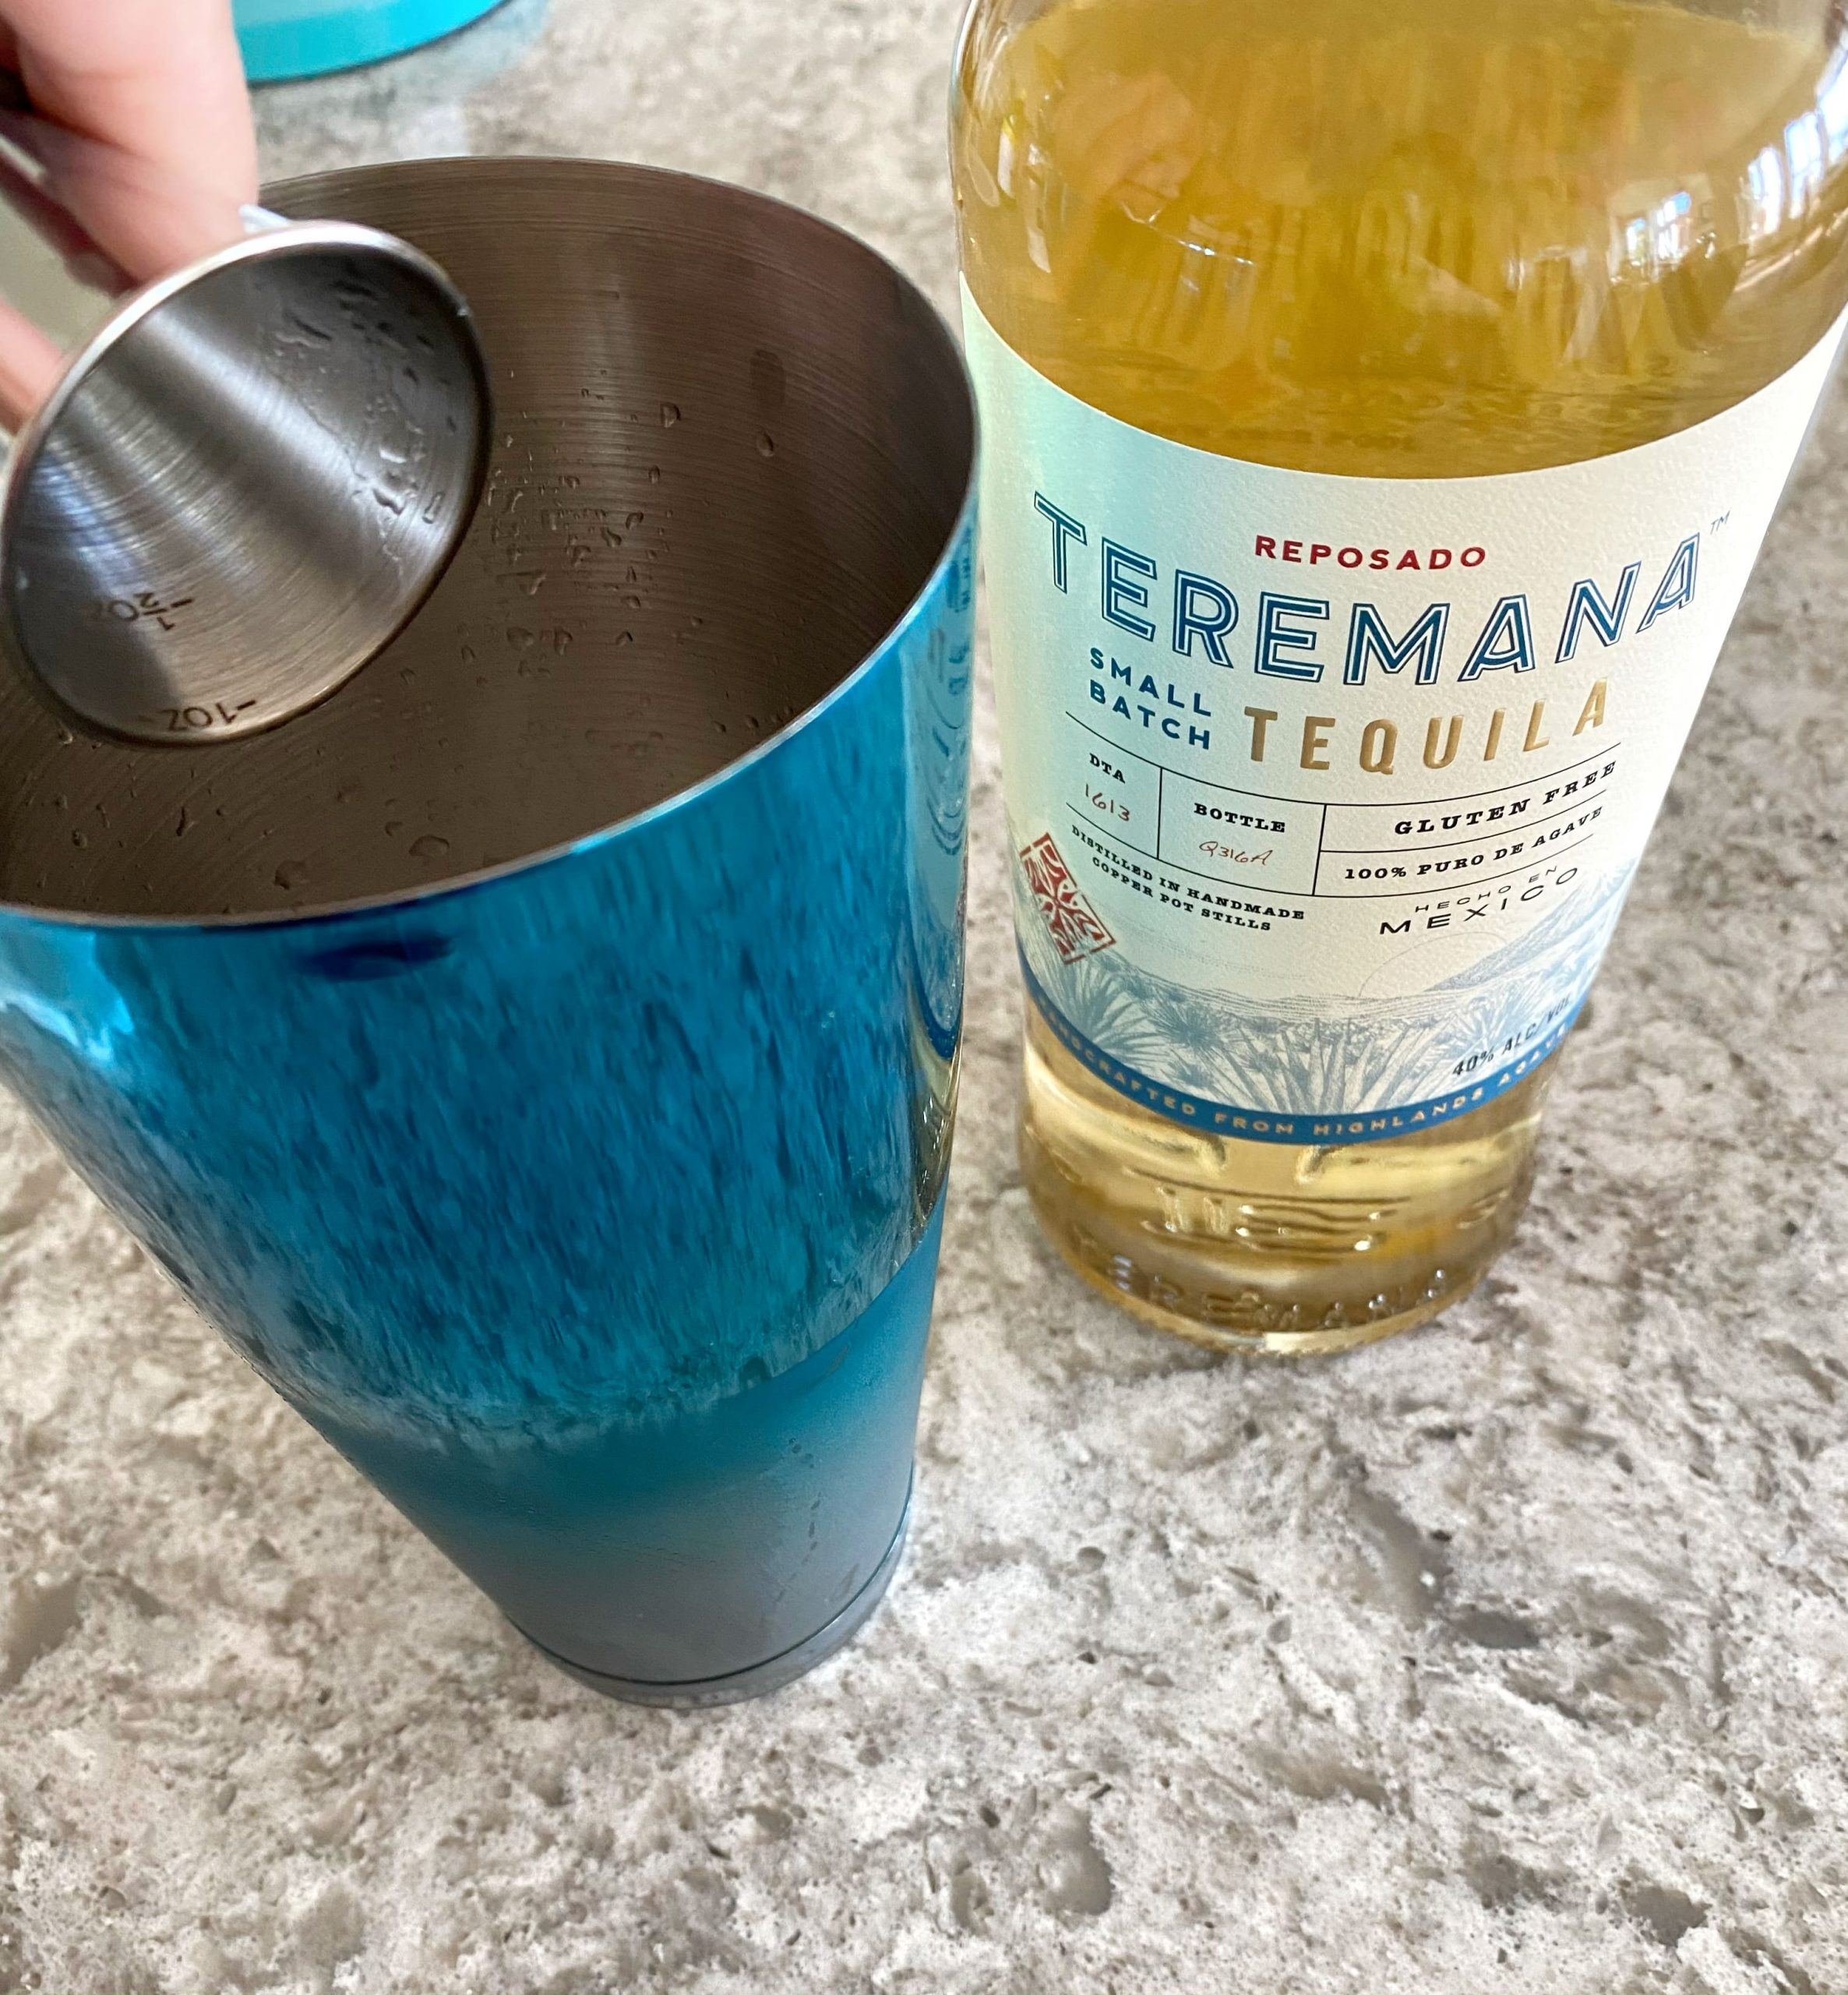 adding Termana reposado tequila to cocktail shaker